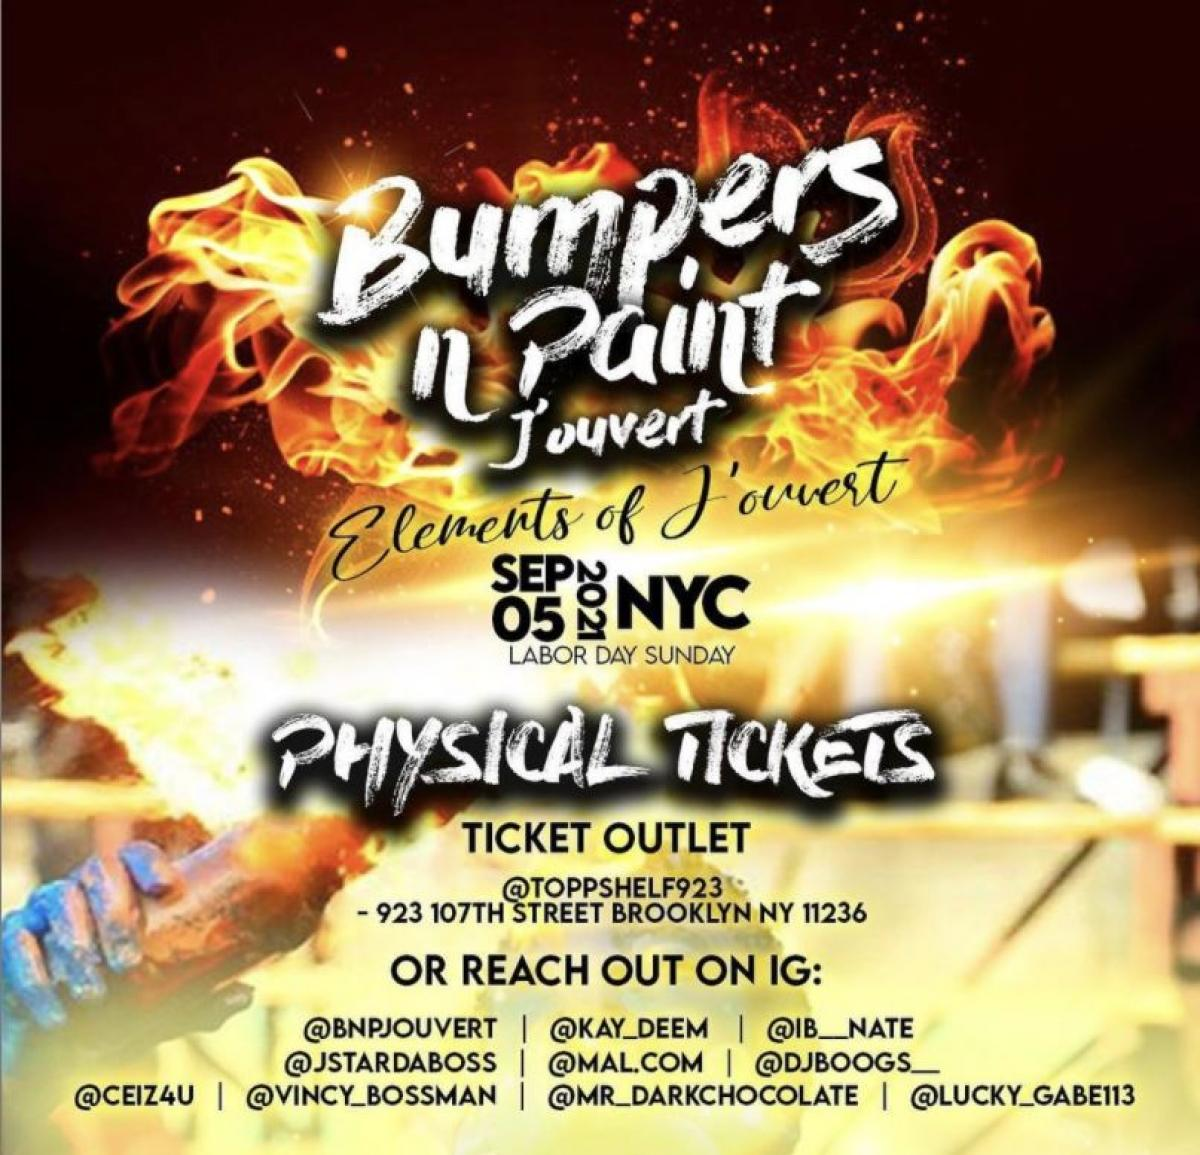 Bumpers N Paint Jouvert NYC flyer or graphic.